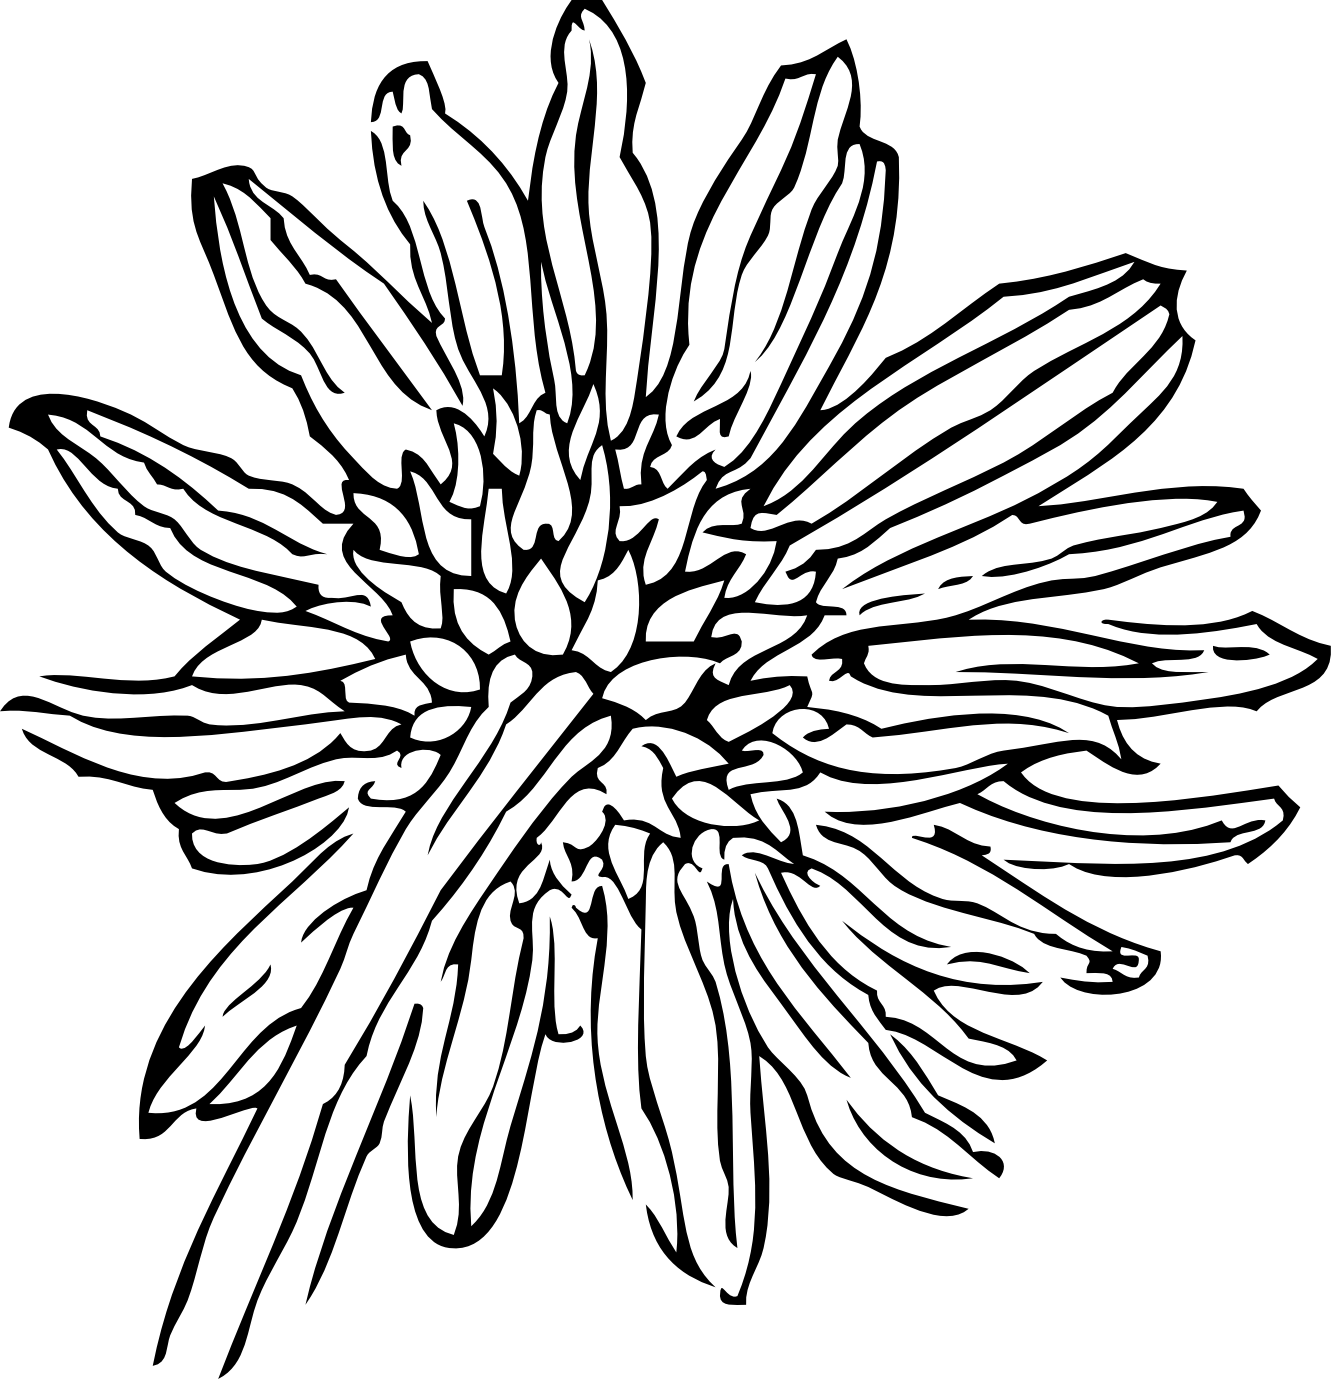 Alstroemeria drawing single. Gerbera daisy at getdrawings